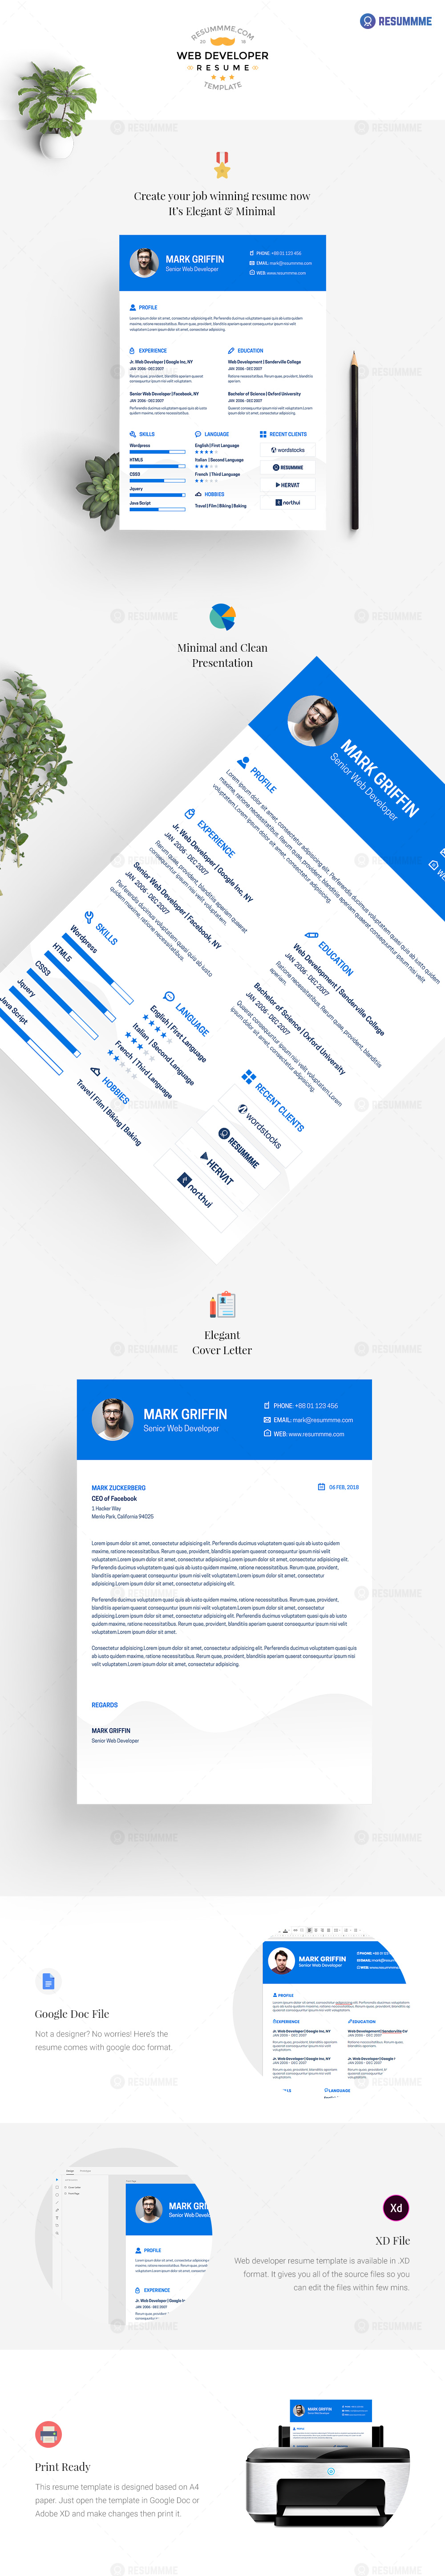 Web Developer Resume Template Free  Web Developer Resume Template